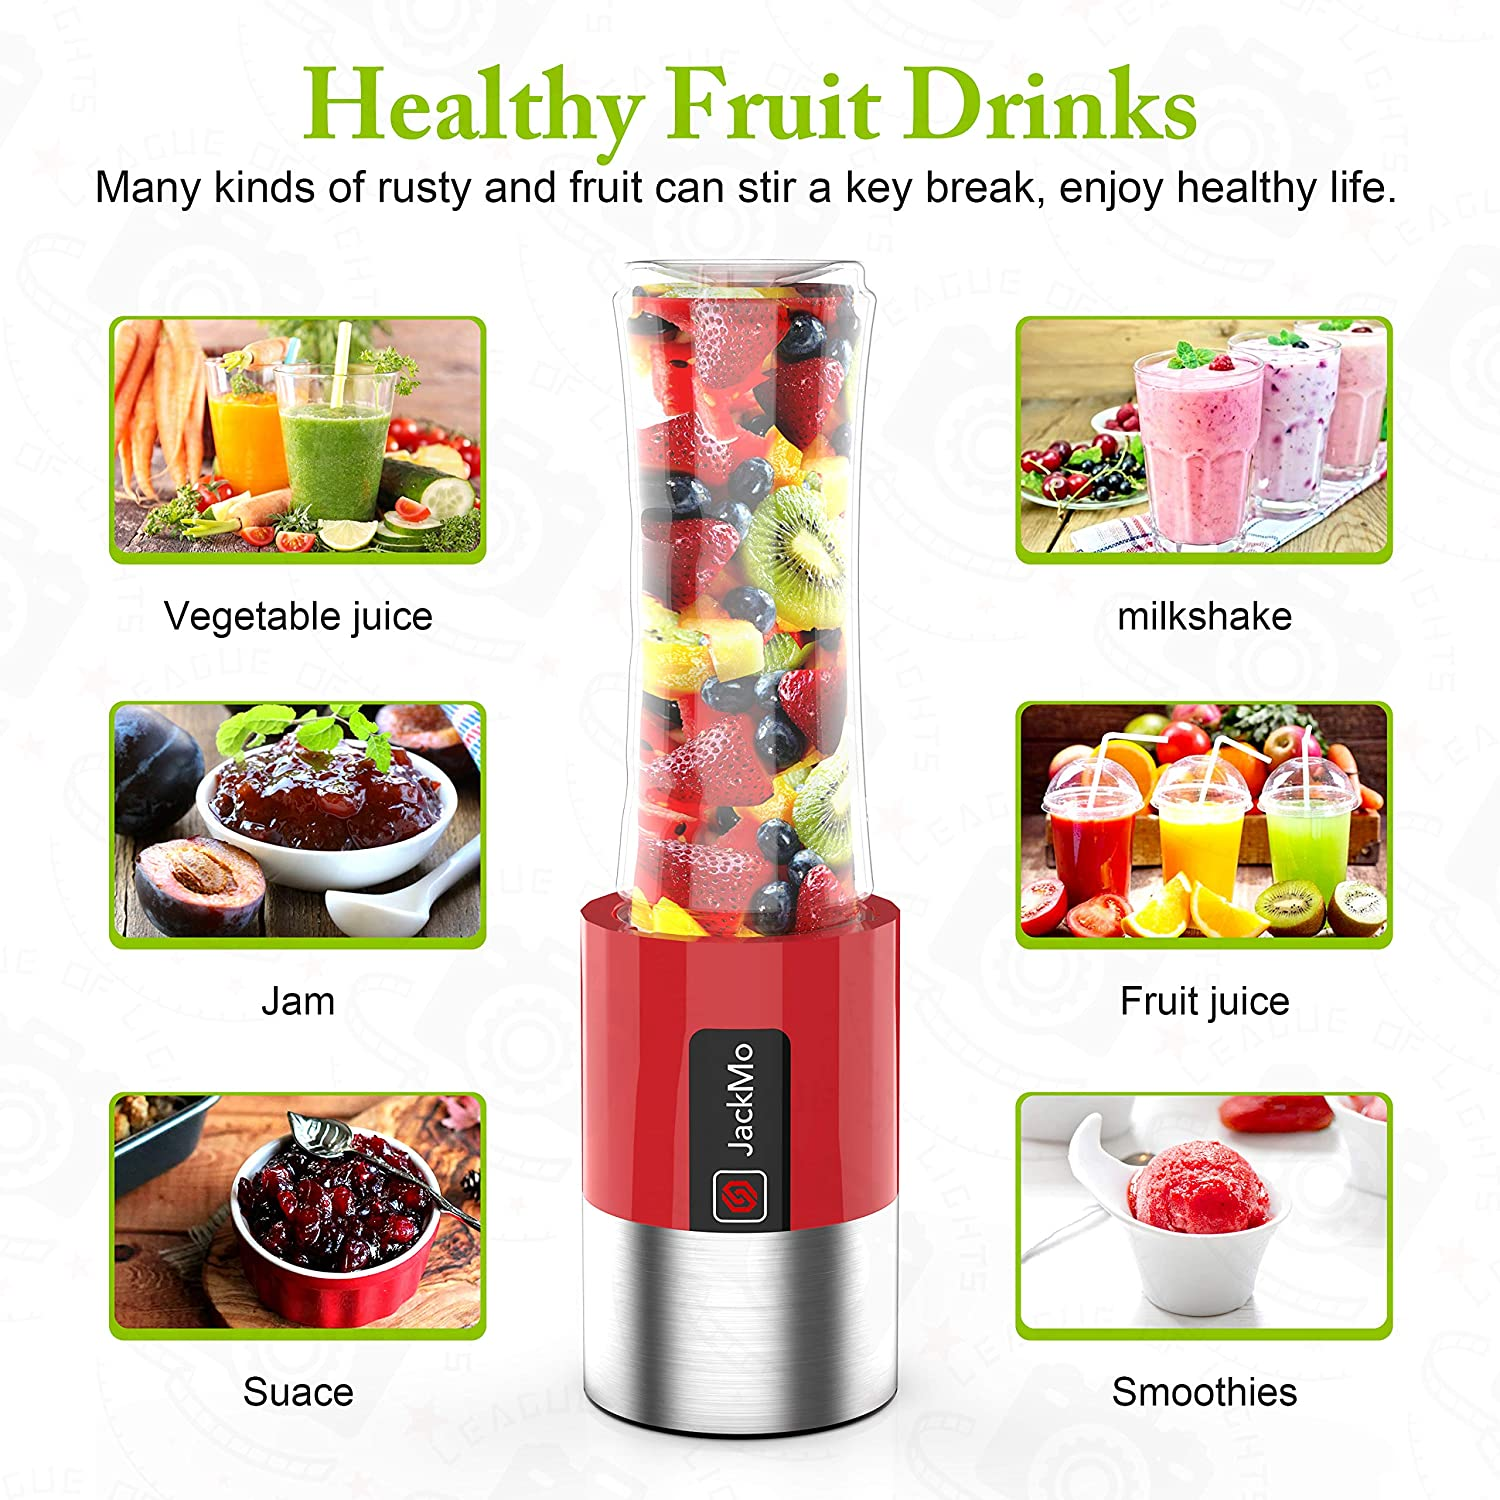 JackMo Portable Blender, Vacuum Preservation Mini Smoothies Mixer, Home Office and Travel Portable Personal Mixer, Vegetables Juice Shakes and Smoothies Available